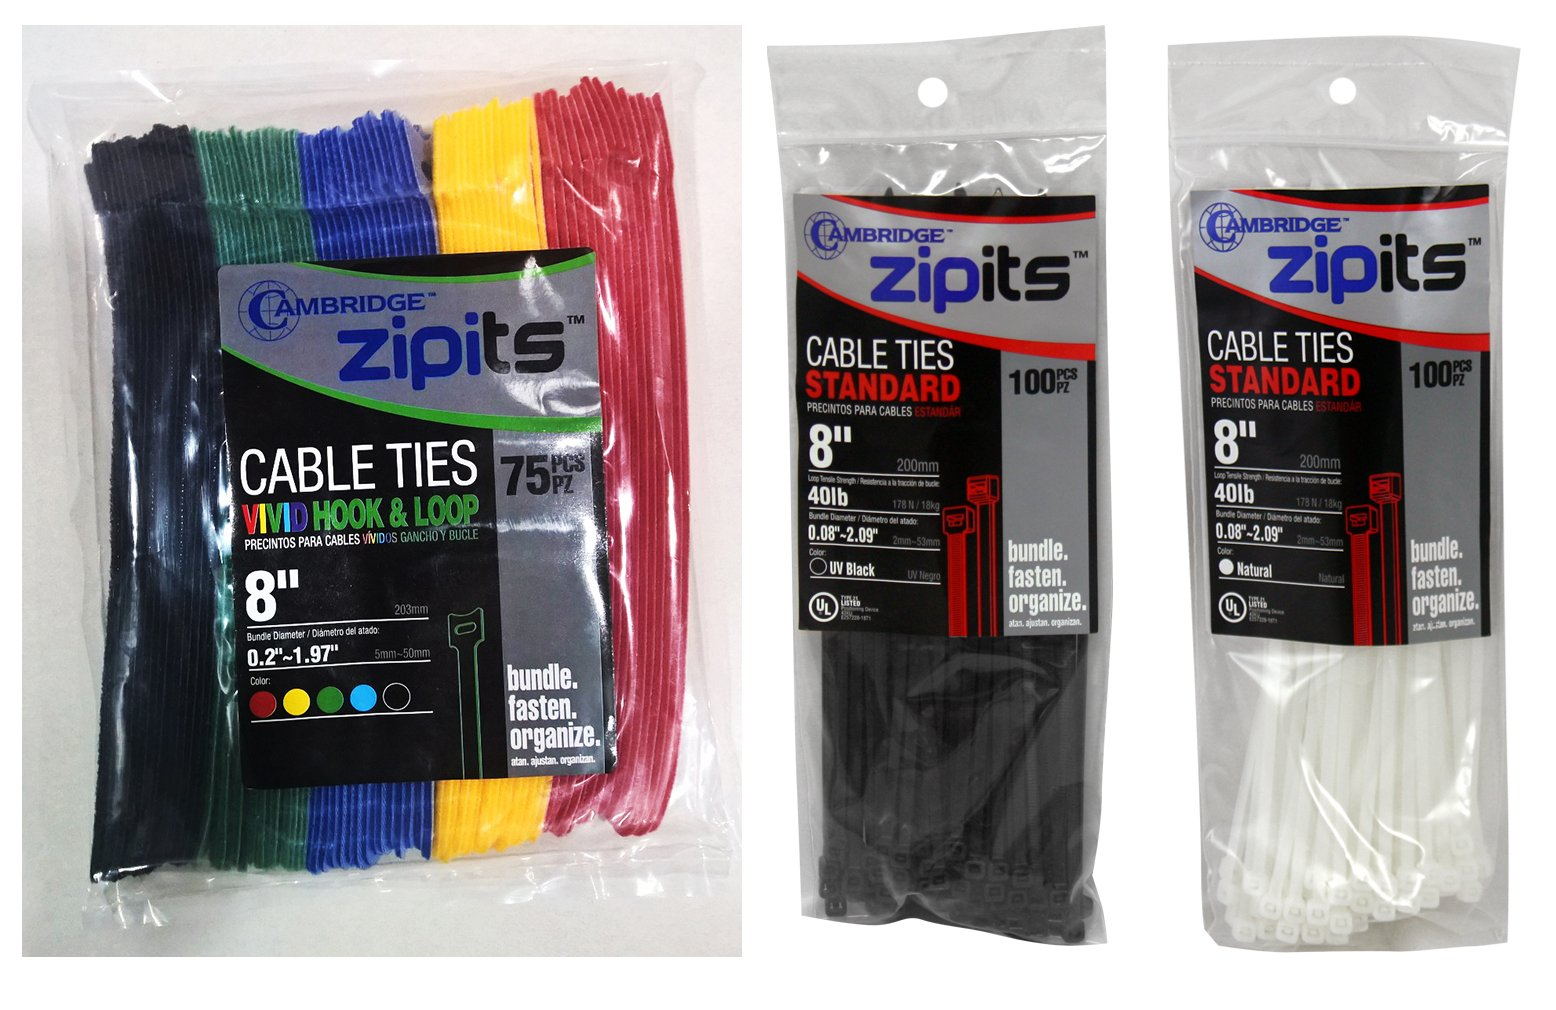 Cambridge ZipIts Self Gripping Reusable Fastening Hook & Loop Cable Ties, 8'' Long X 1/2'' Wide, 75 Pcs. 15 Pcs Each of Black, Blue, Green, Red, Yellow. BONUS 200 Pcs 8'' 40 Lbs Cable Ties